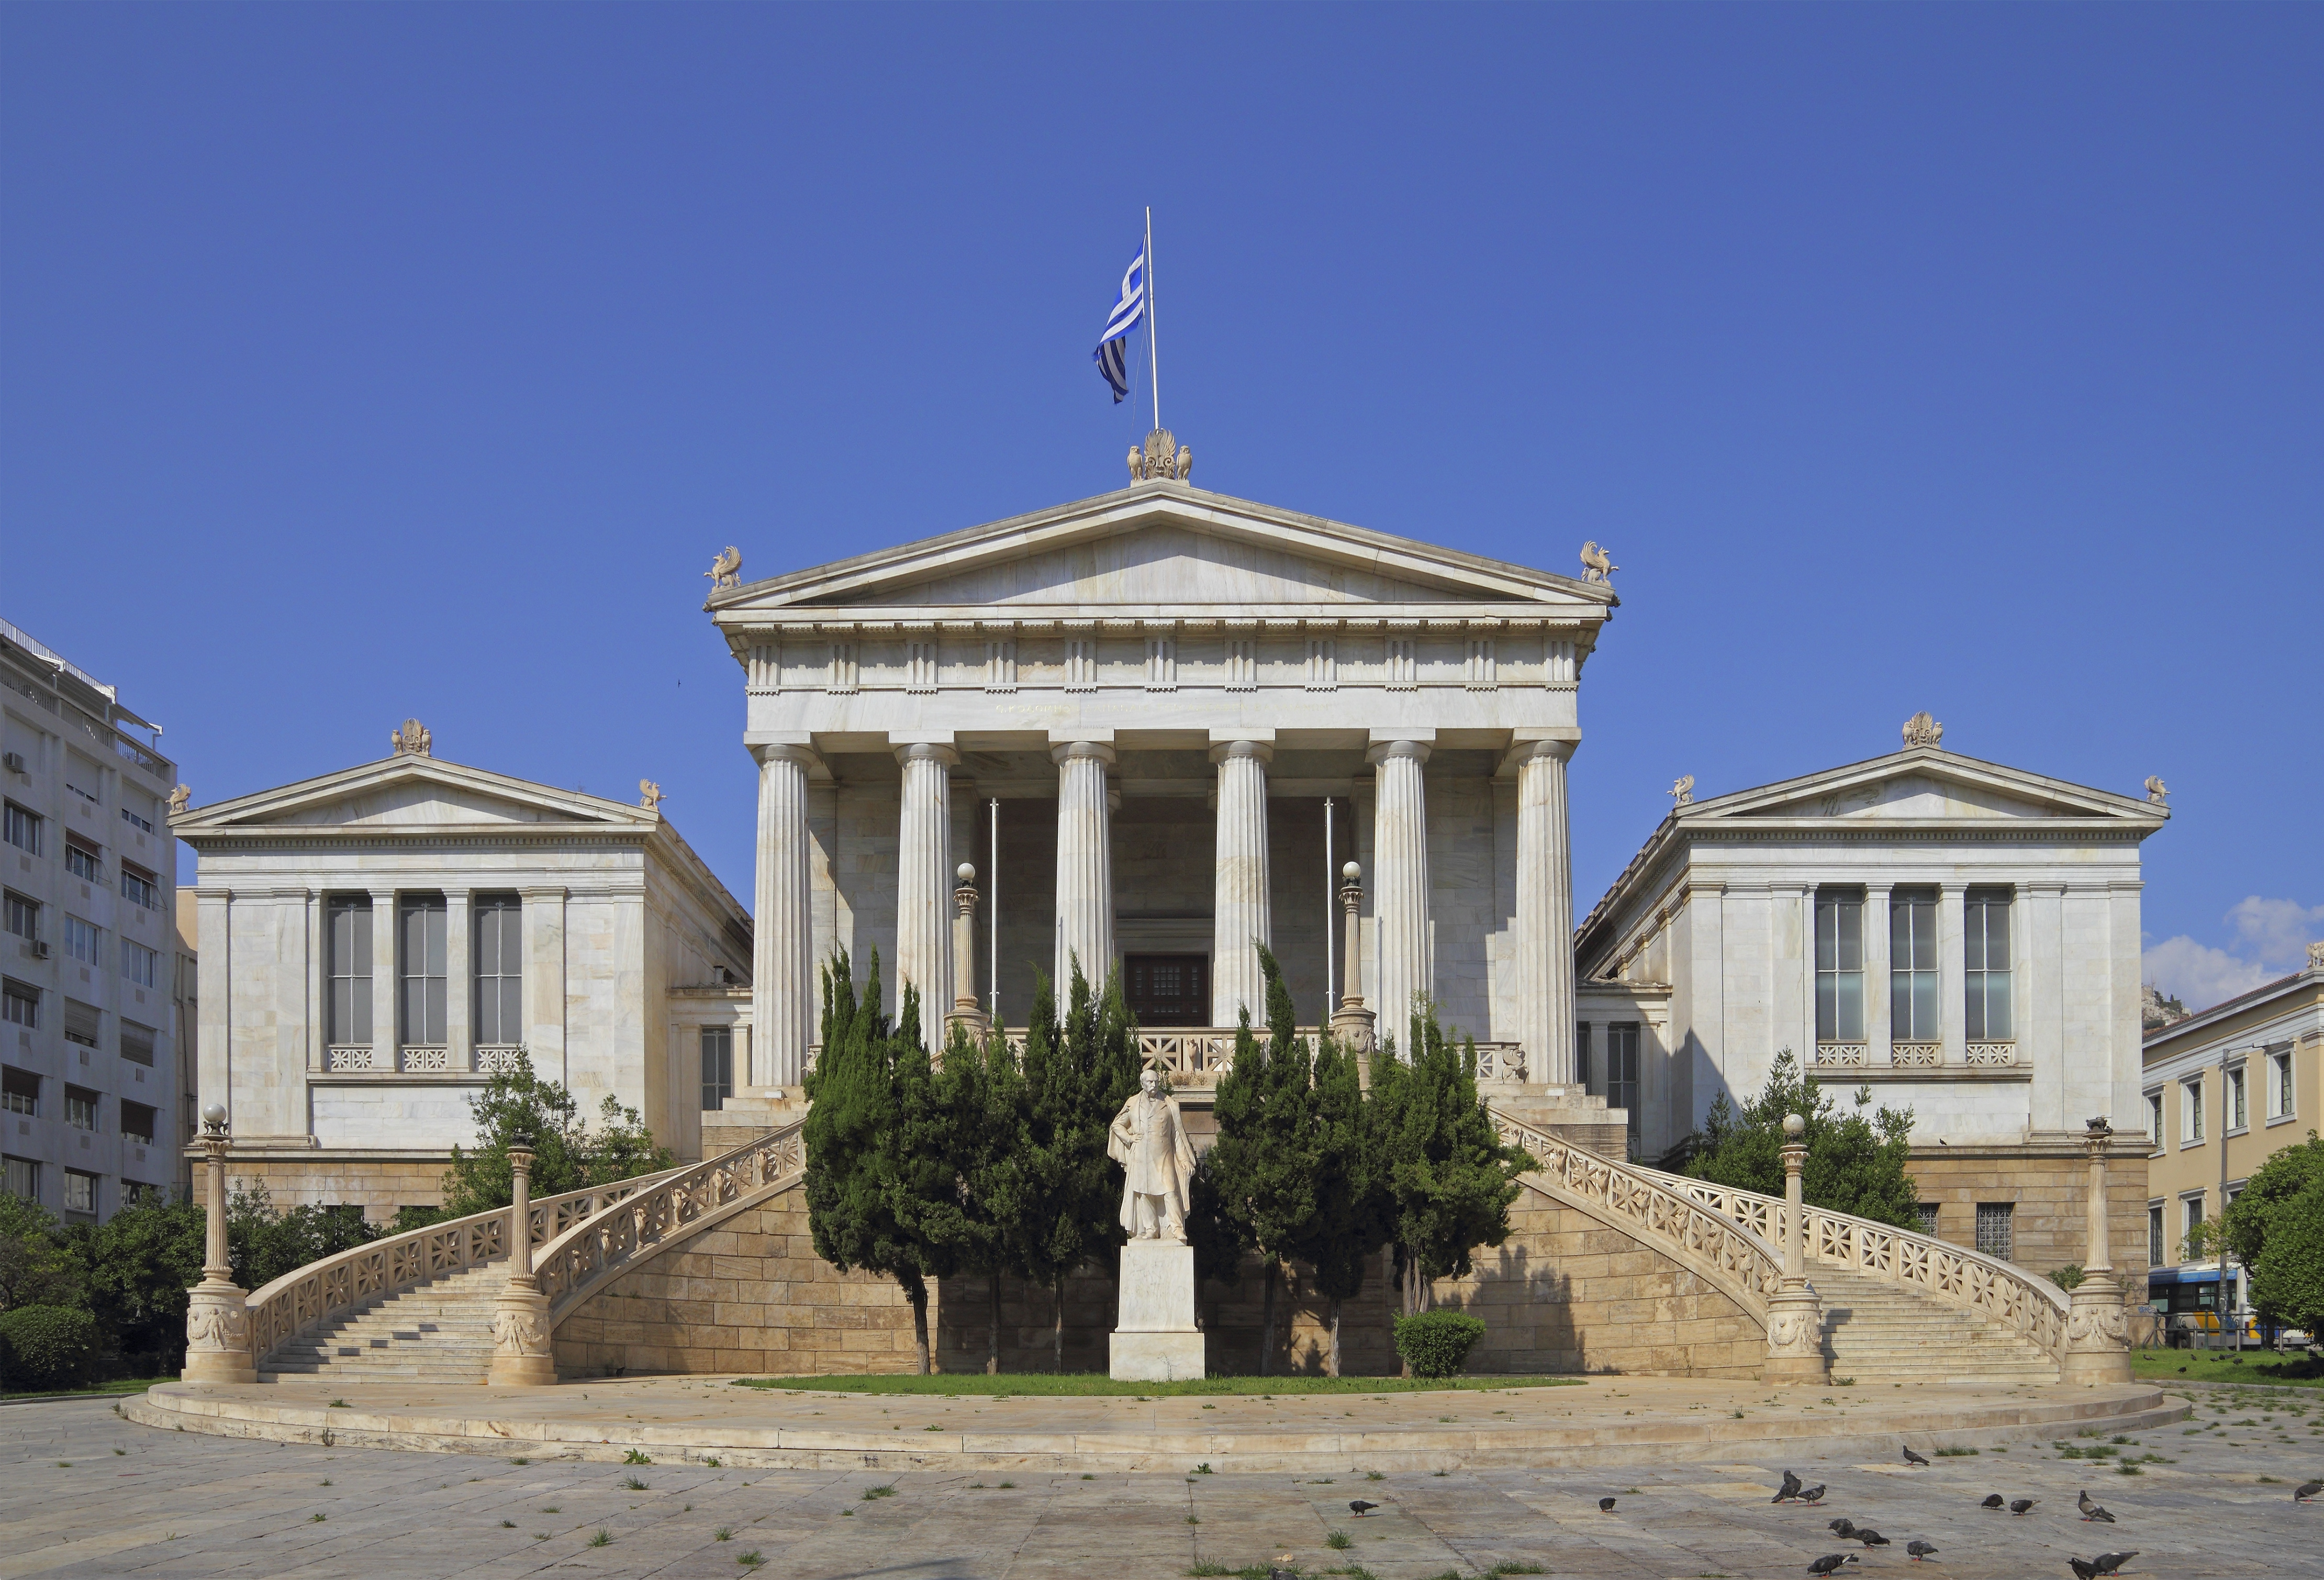 The building of the national library of greece